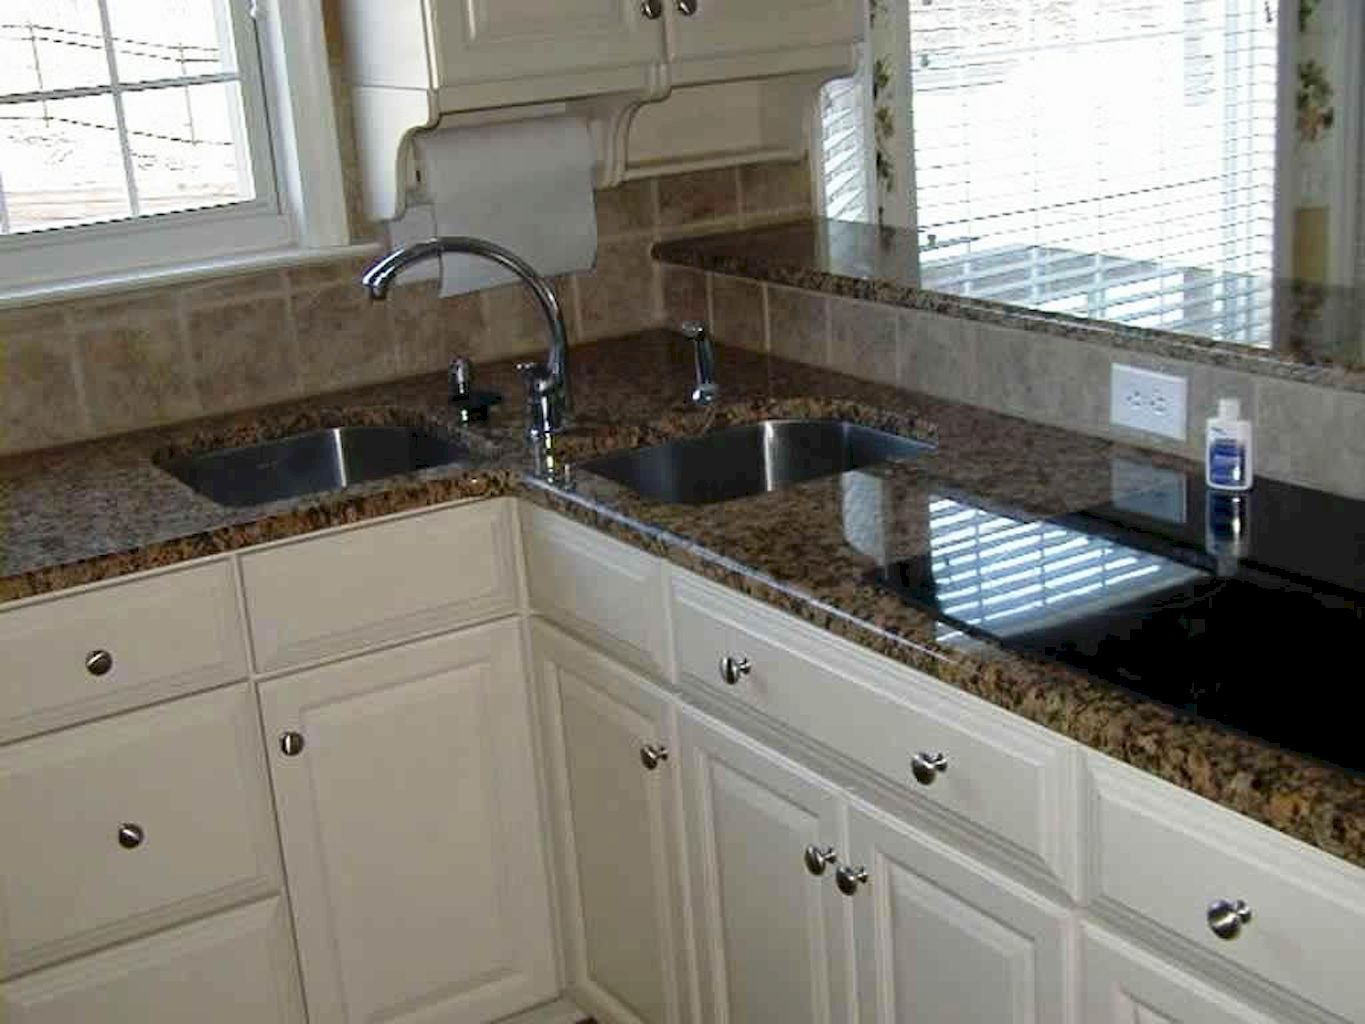 Corner Kitchen Sink Cabinet Dimensions Measurements File Island Cooktop Kitchen Island Dimensions Kitchen Island Size